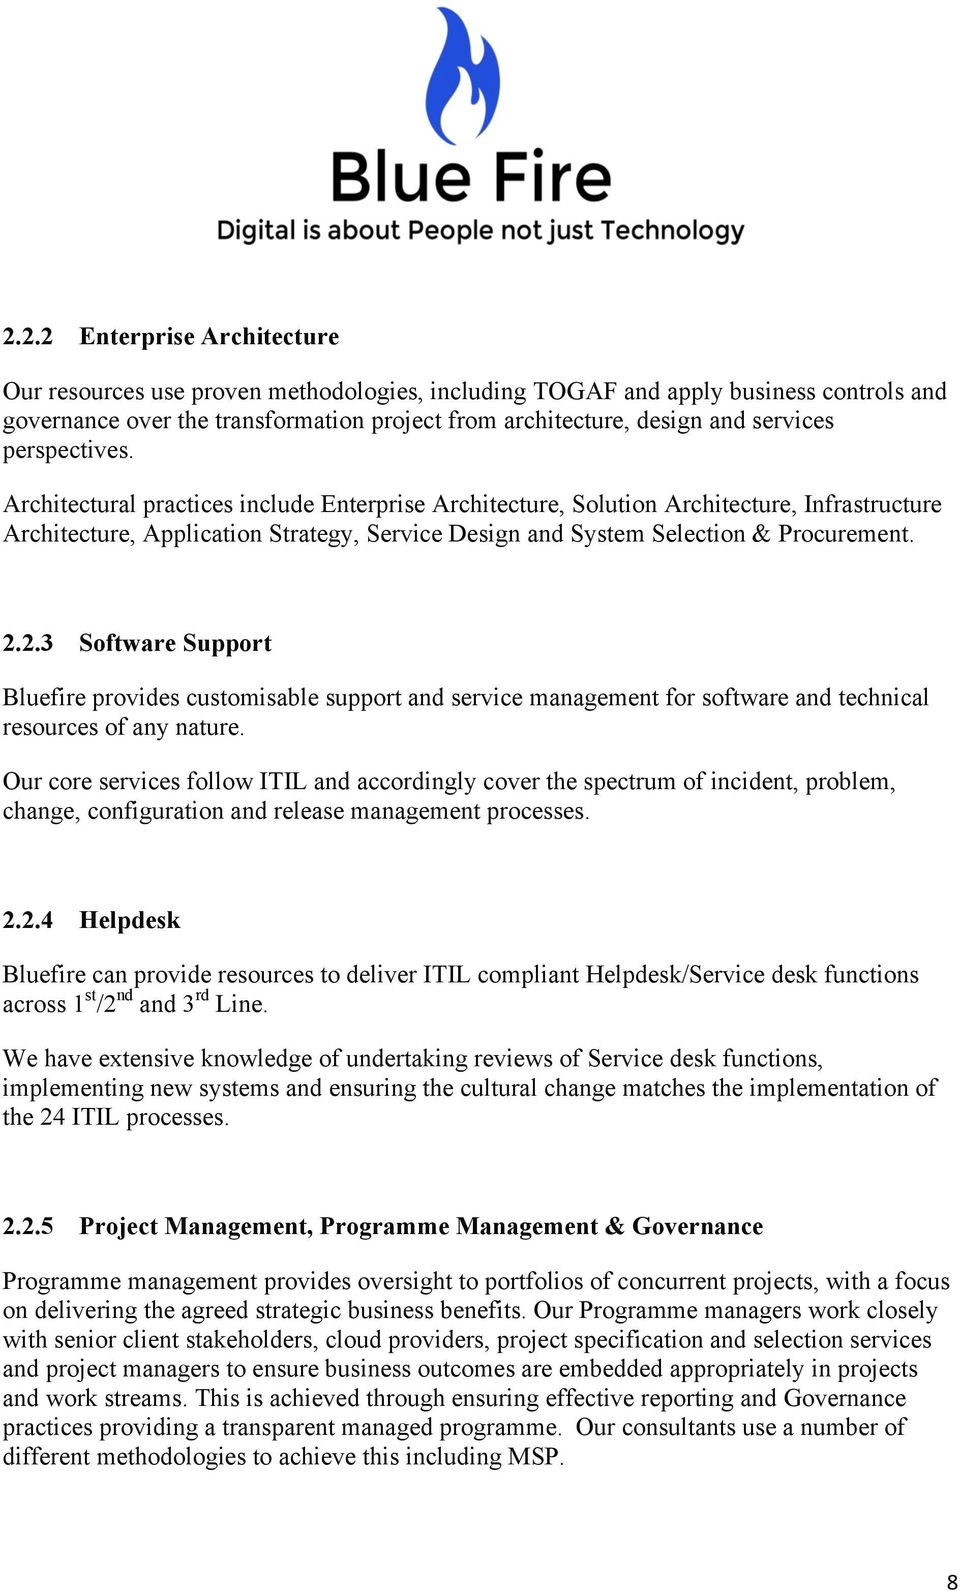 2.3 Software Support Bluefire provides customisable support and service management for software and technical resources of any nature.